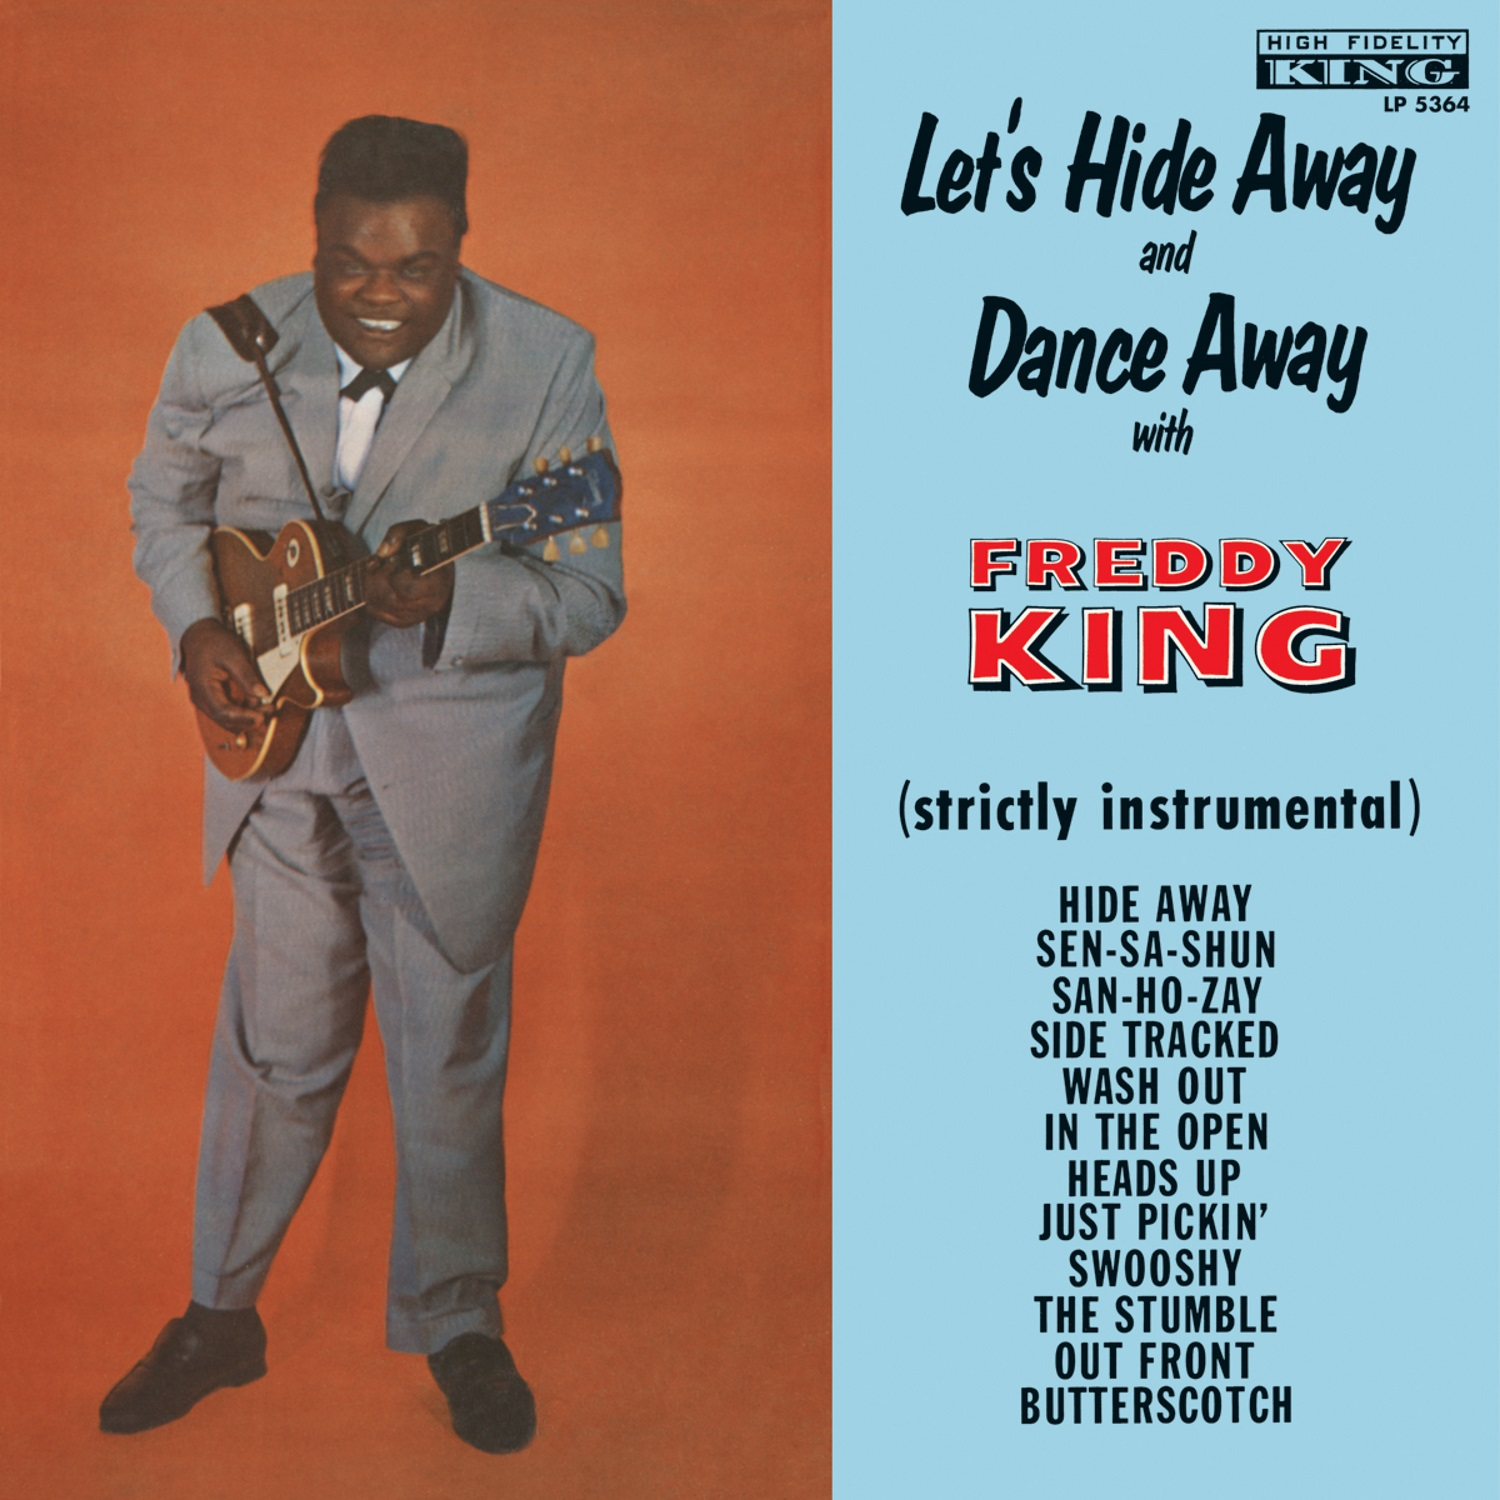 King, Freddy (Freddie) - Lets Hide Away and Dance Away with Freddy King